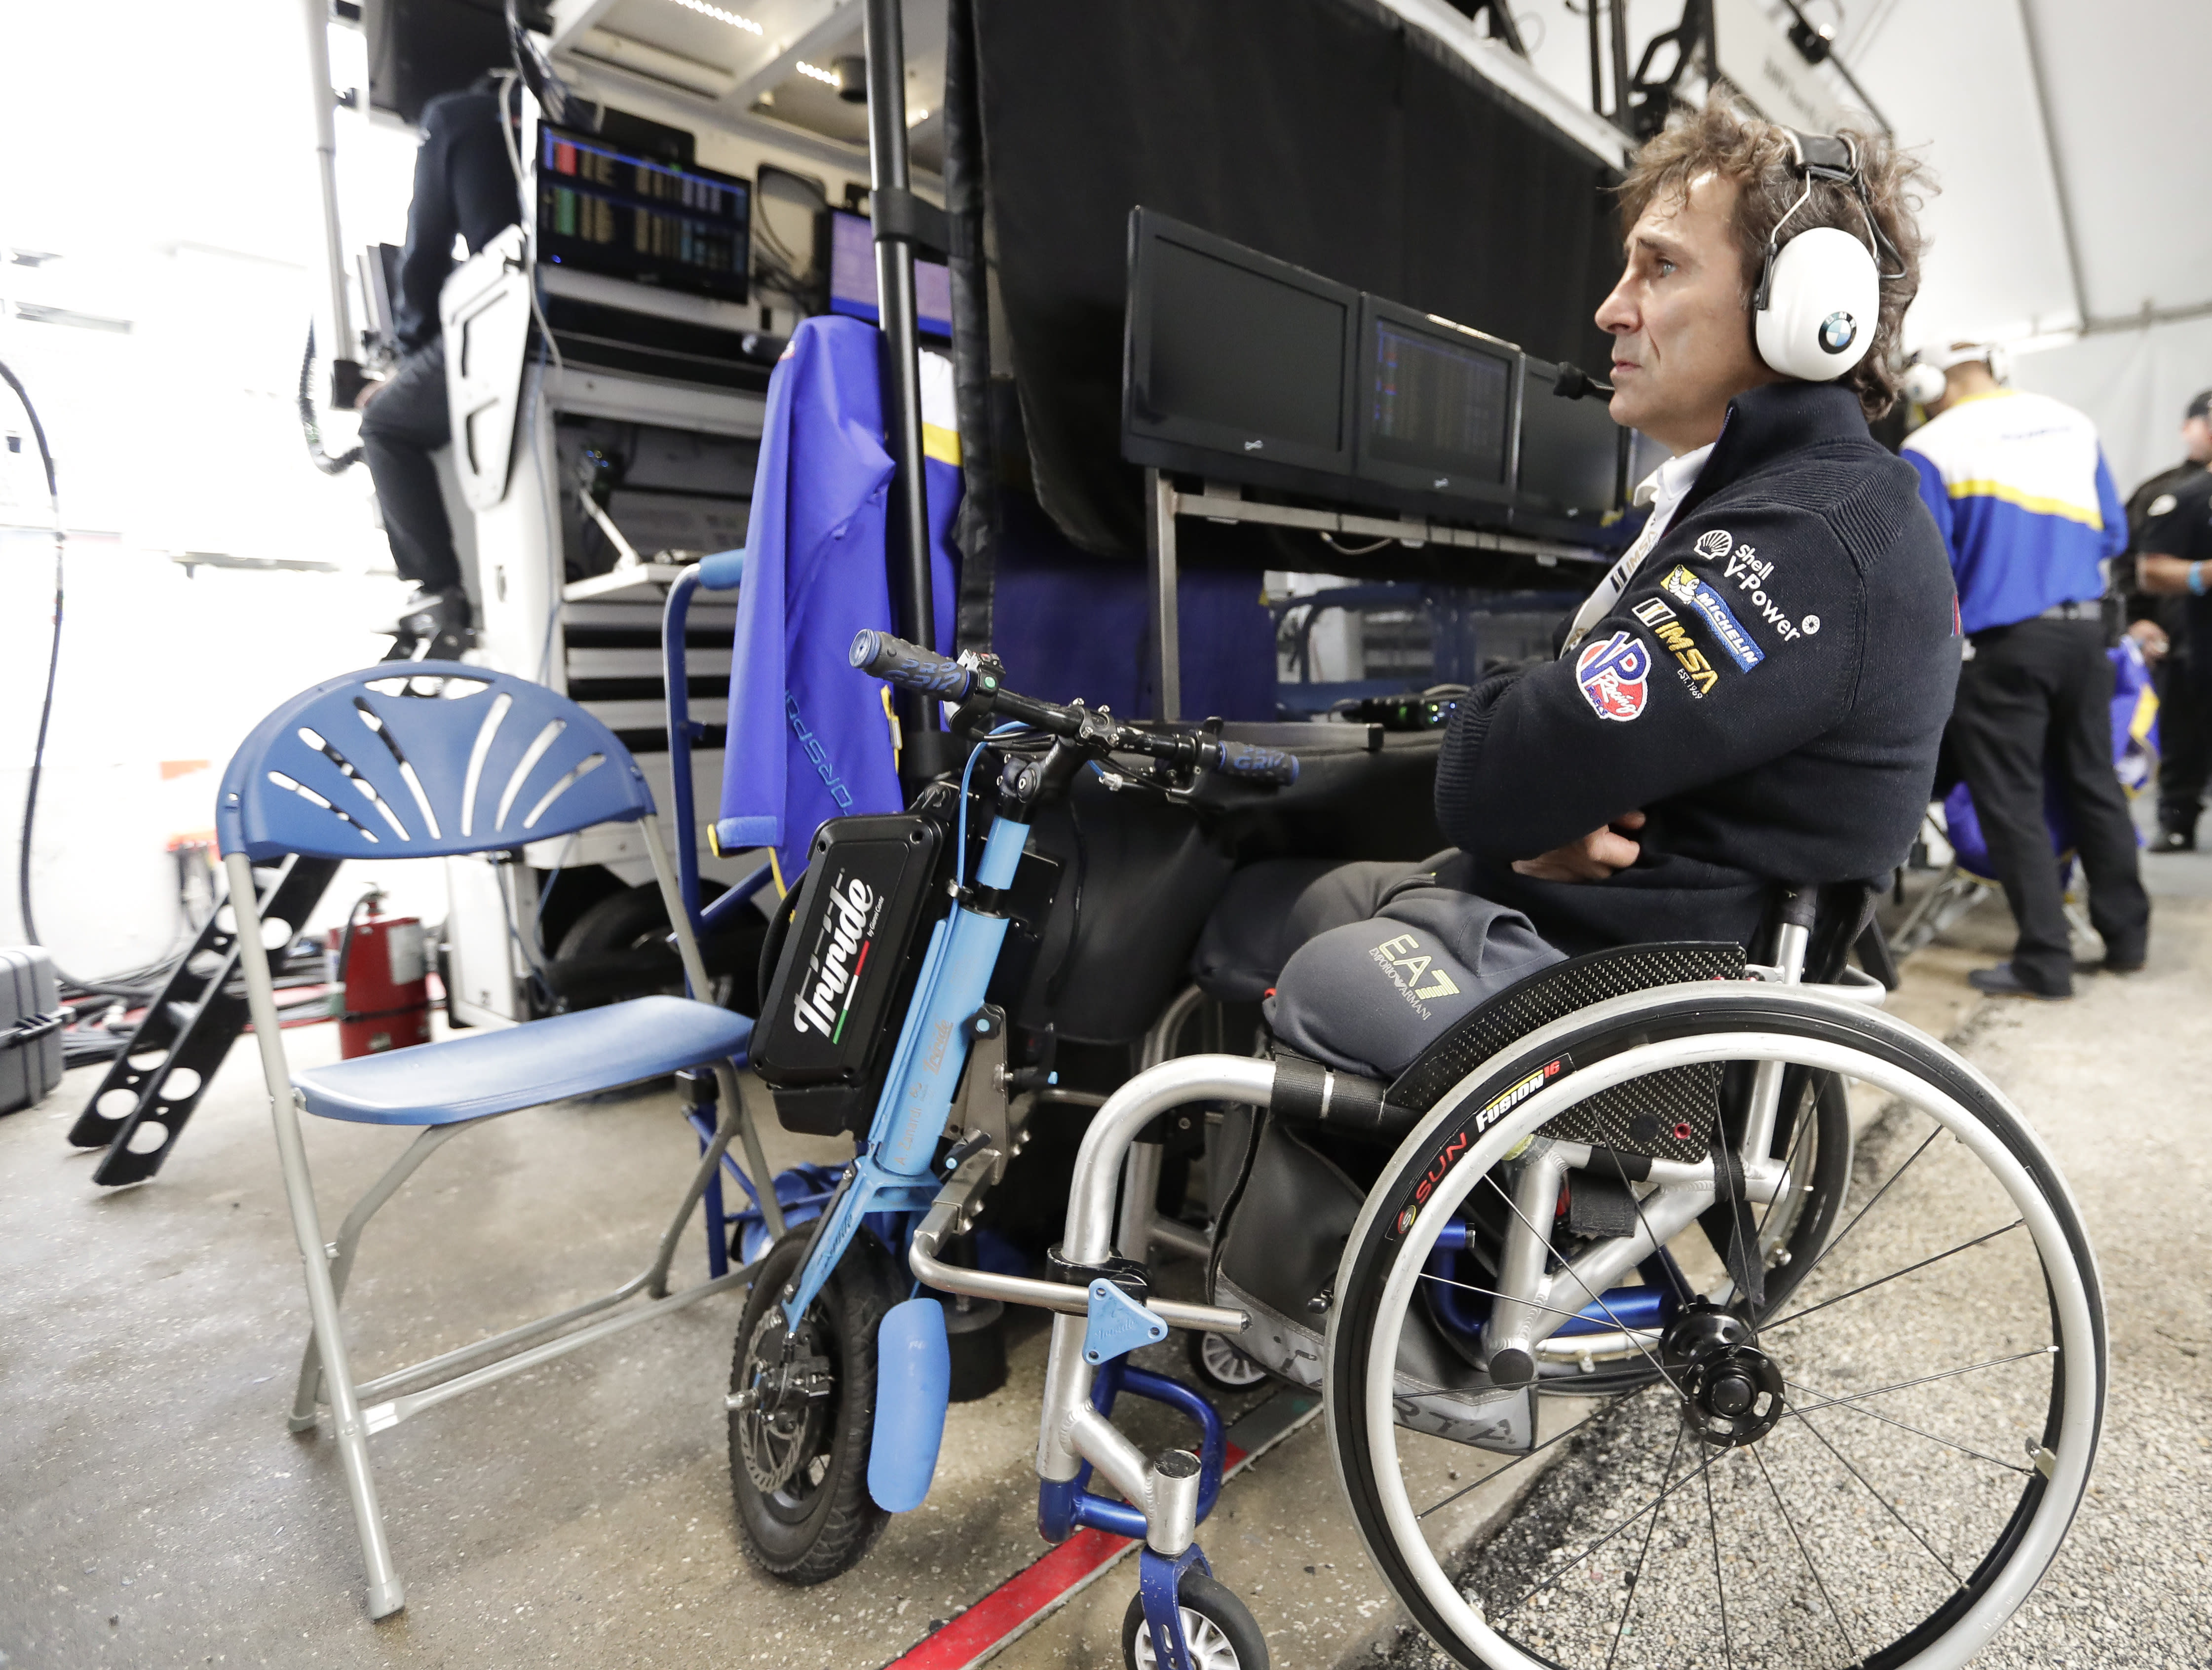 Alex Zanardi watches a video monitor in his pit stall during a practice session for the IMSA 24 hour race at Daytona International Speedway, Thursday, Jan. 24, 2019, in Daytona Beach, Fla. (AP Photo/John Raoux)